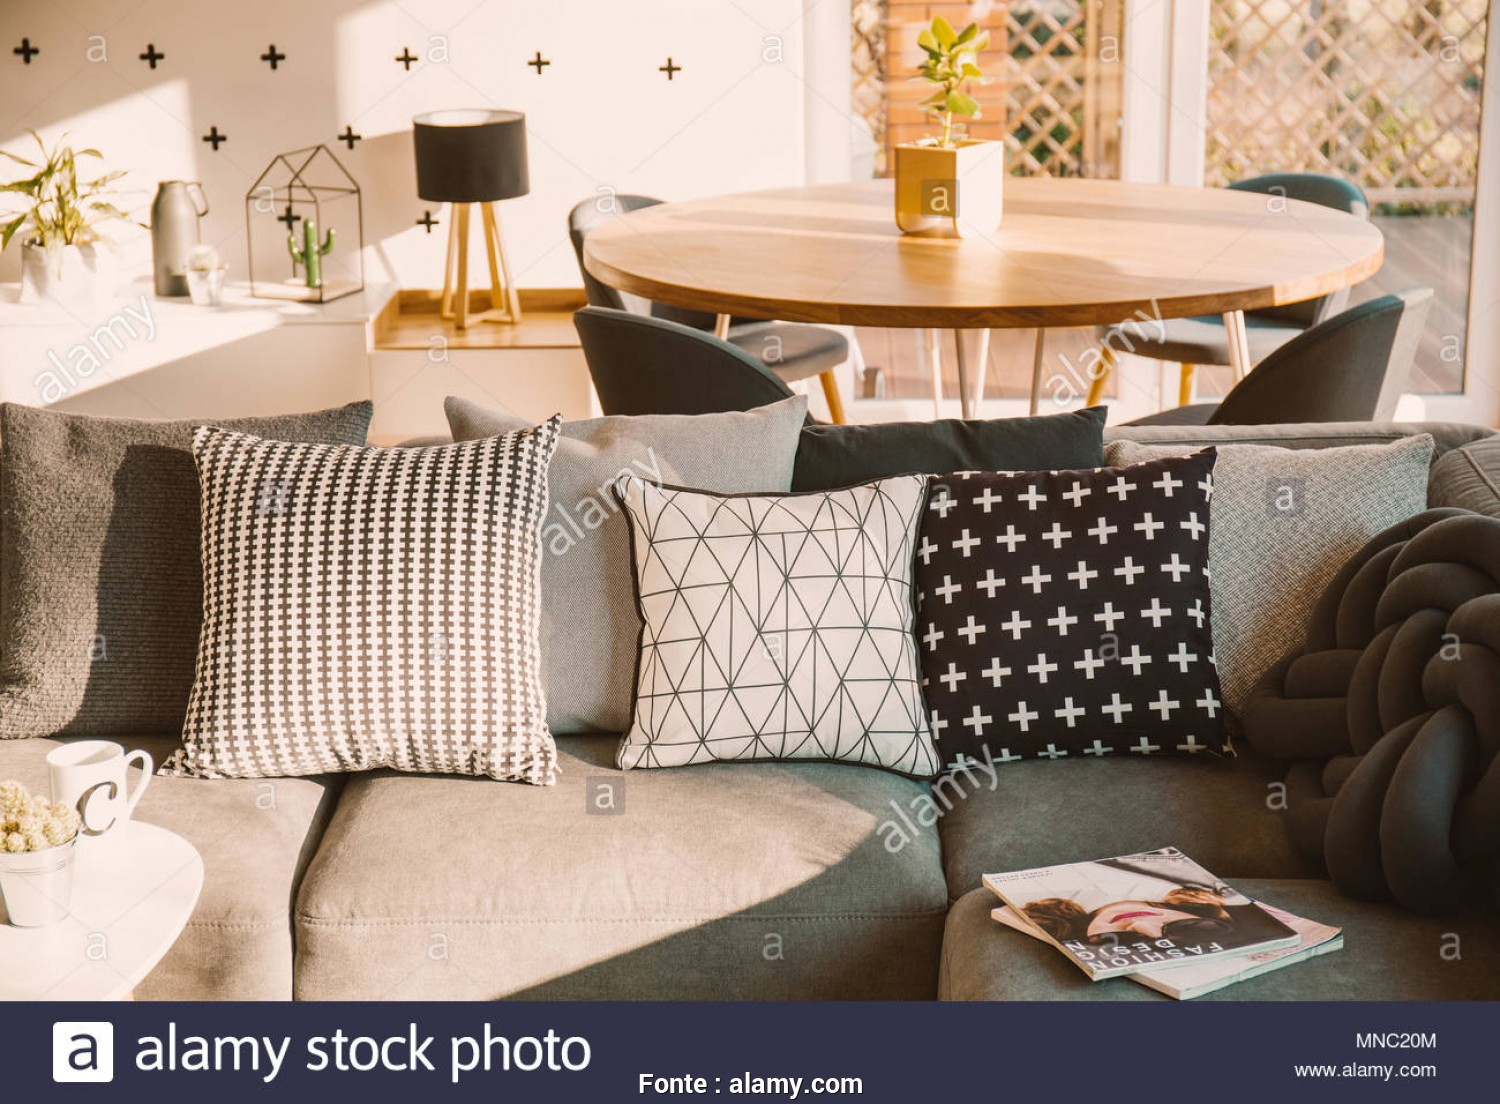 Cuscini Divano Sfondati, Affascinante Black, White Decorative Pillows On A Gray Sofa In A Sunlit Living Room Interior With A Wooden Dining Table